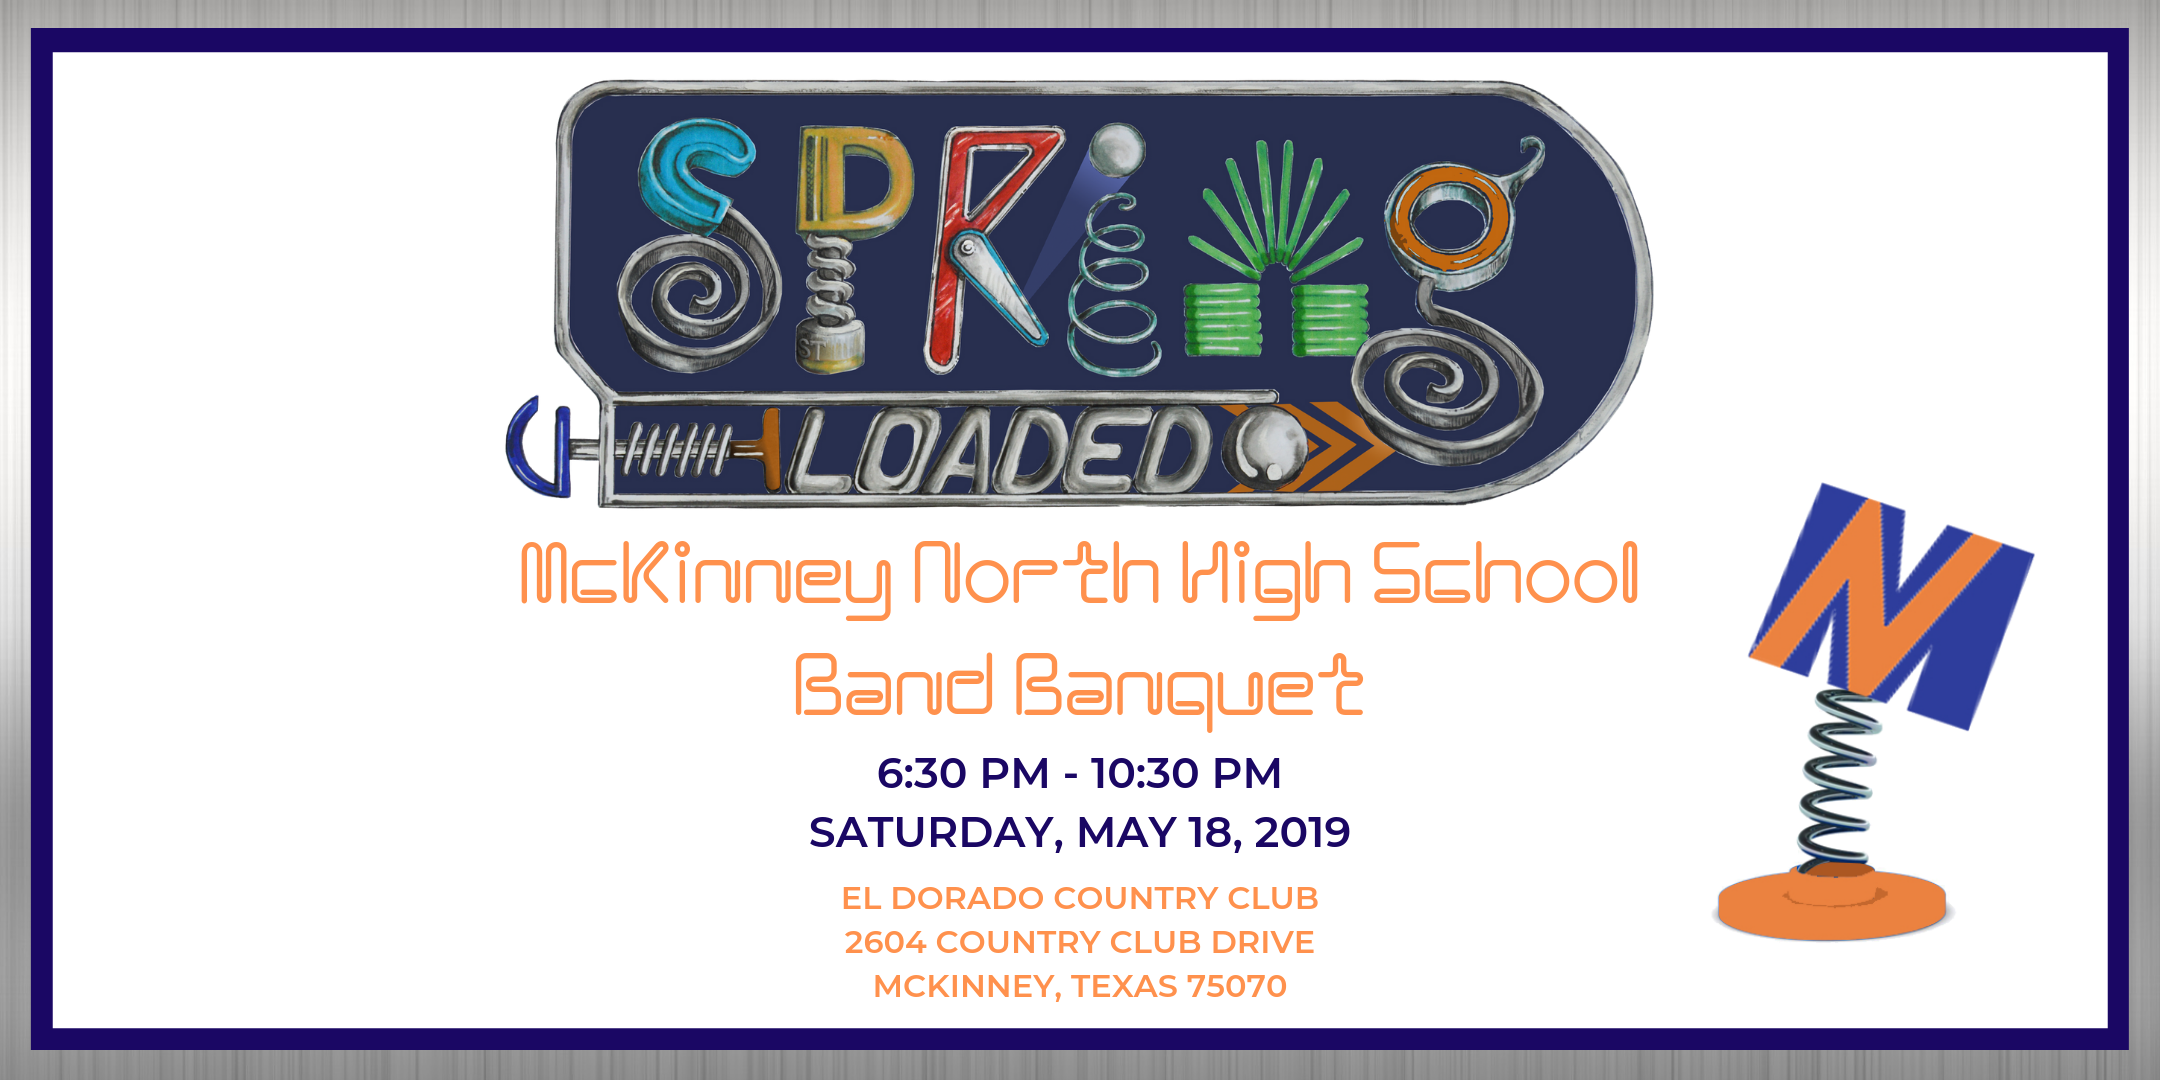 MNHS Band Banquet Eventbrite Header.png